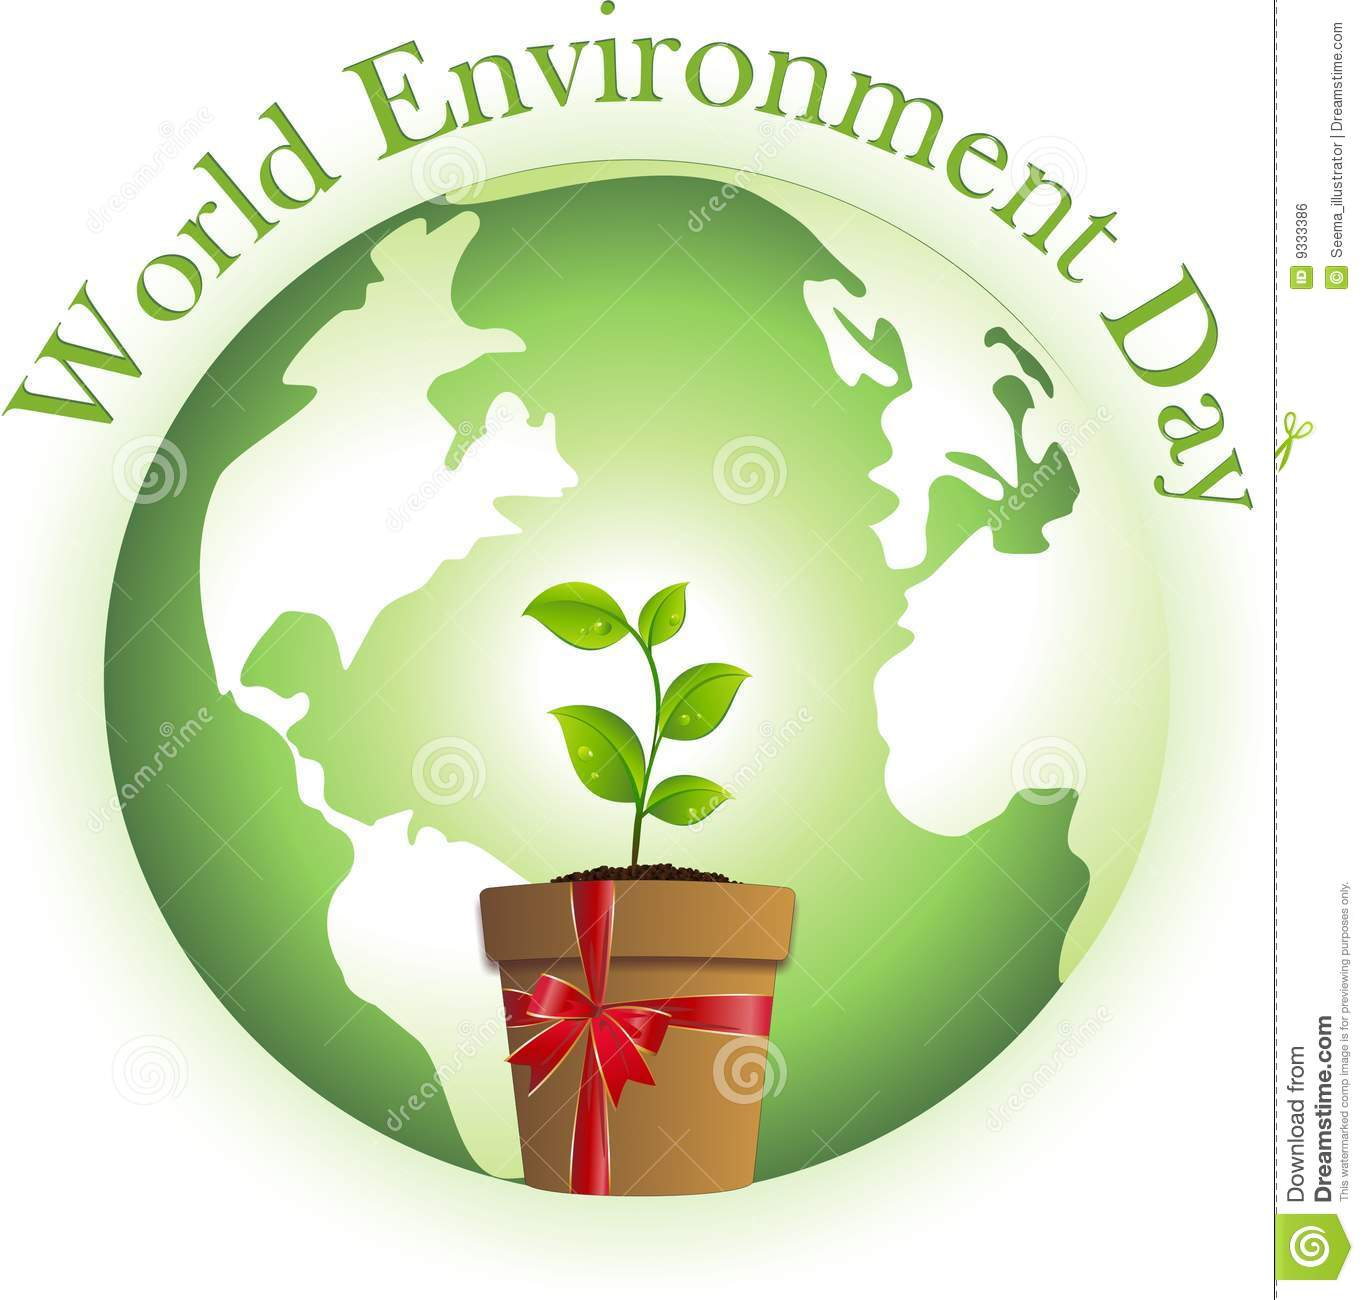 World Environment Day Royalty Free Stock Image.